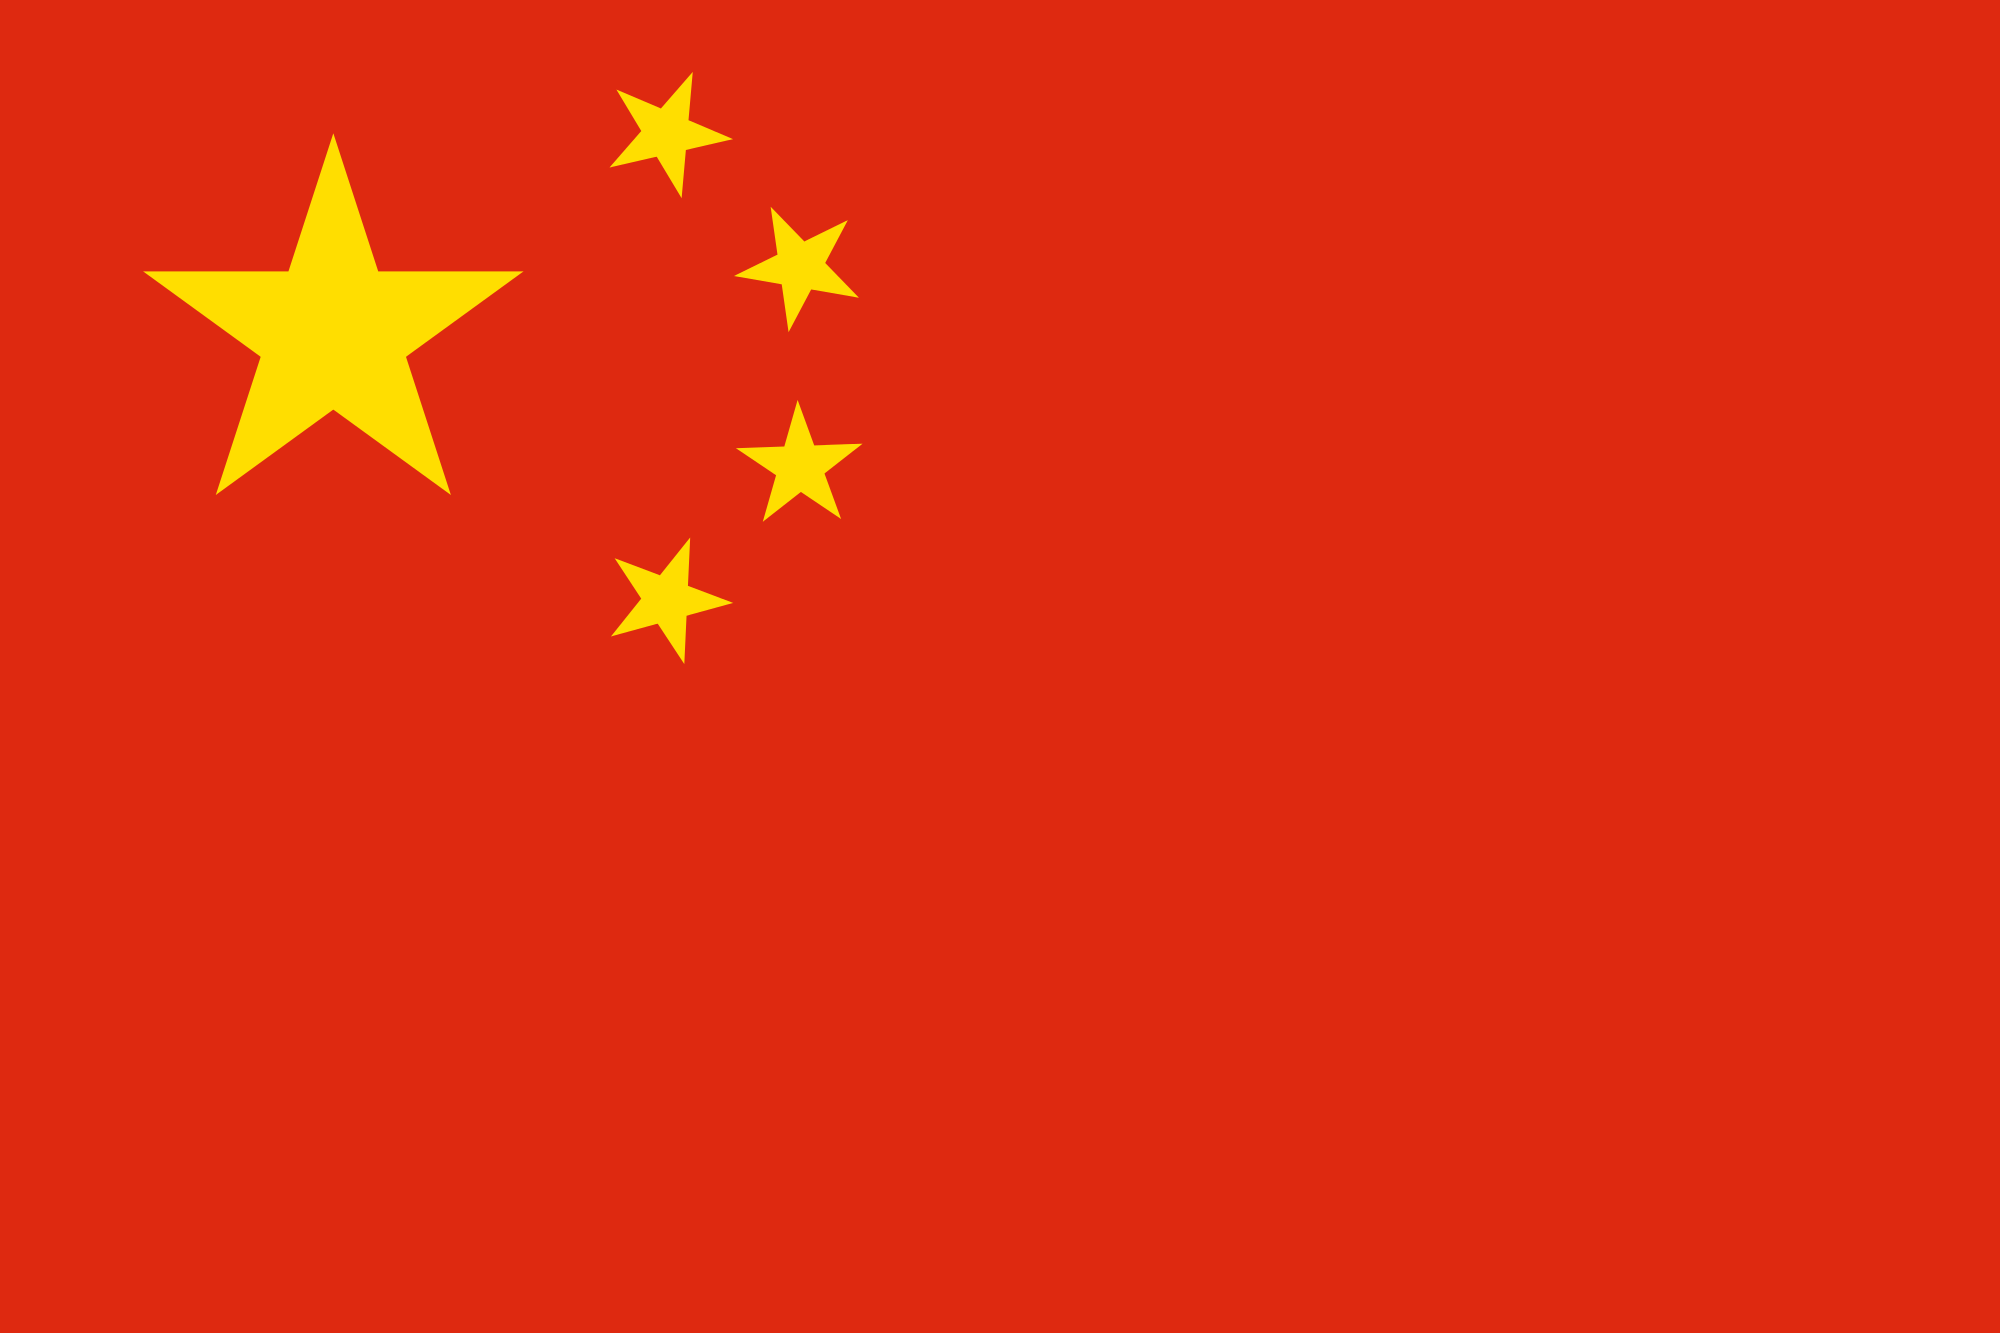 china Overview. Flag of China